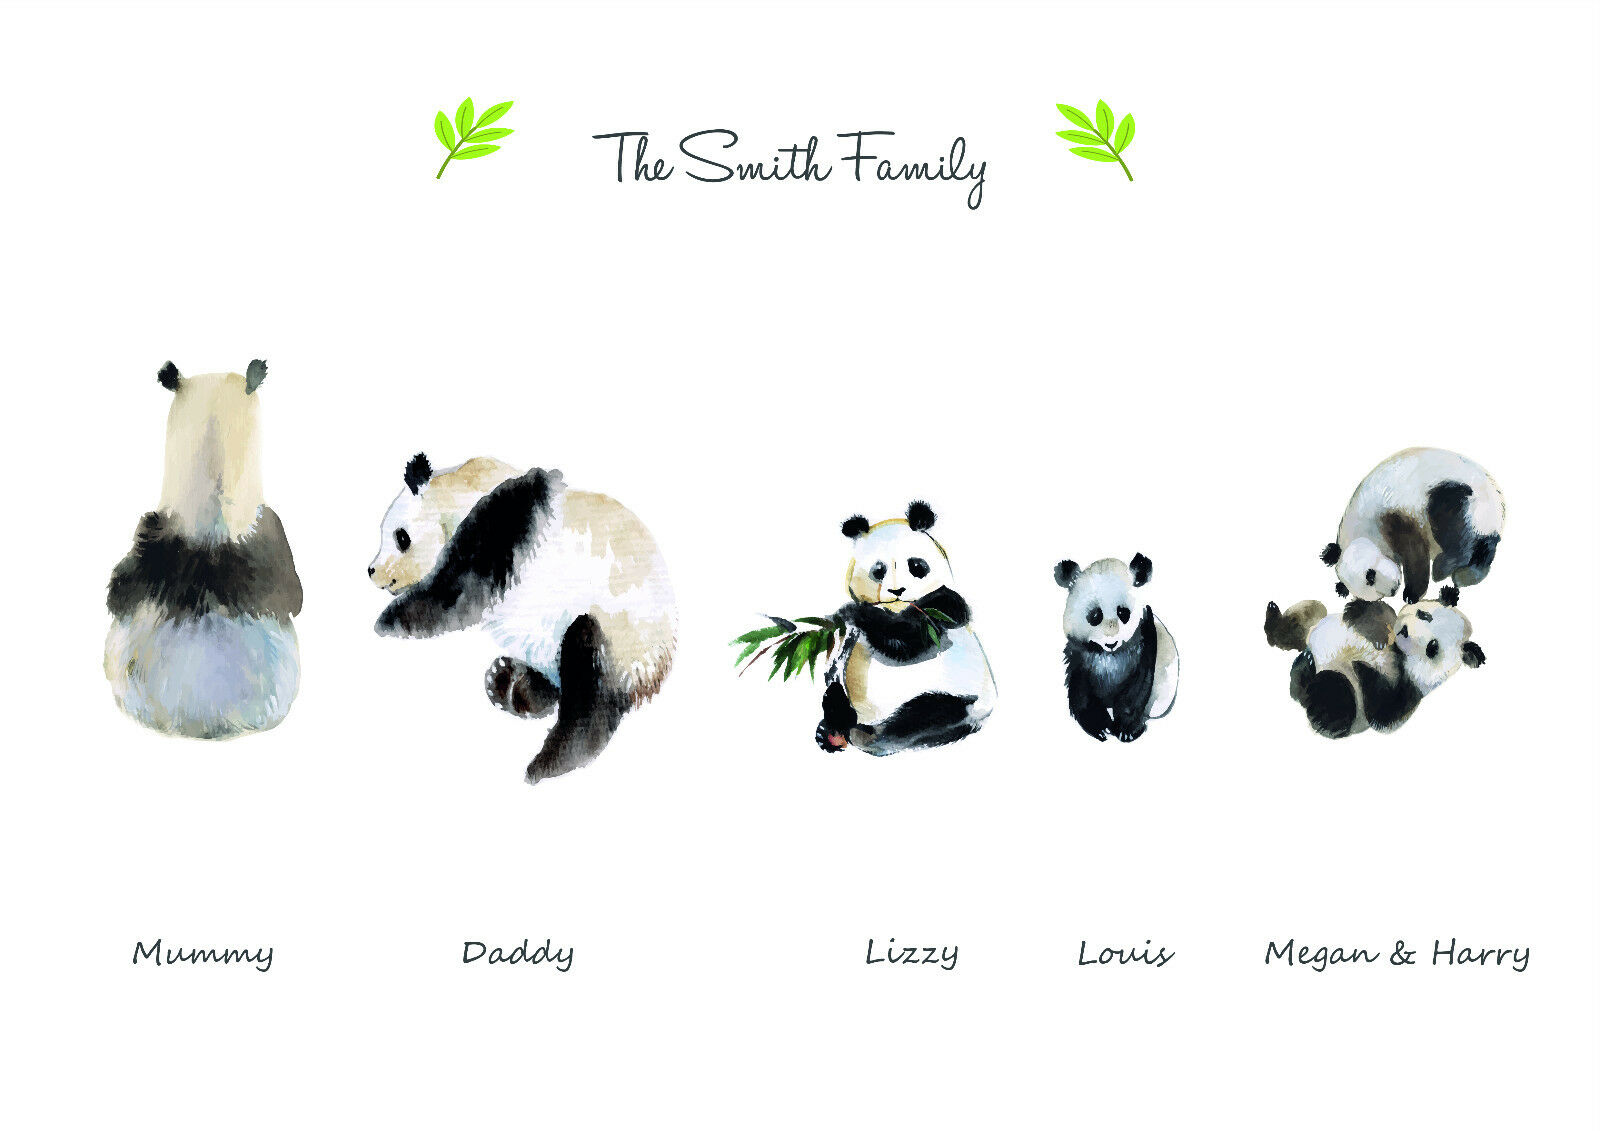 PERSONALISED FAMILY POLAR BEAR ART PRINT  - BUILD YOUR OWN FAMILY TREE PIC